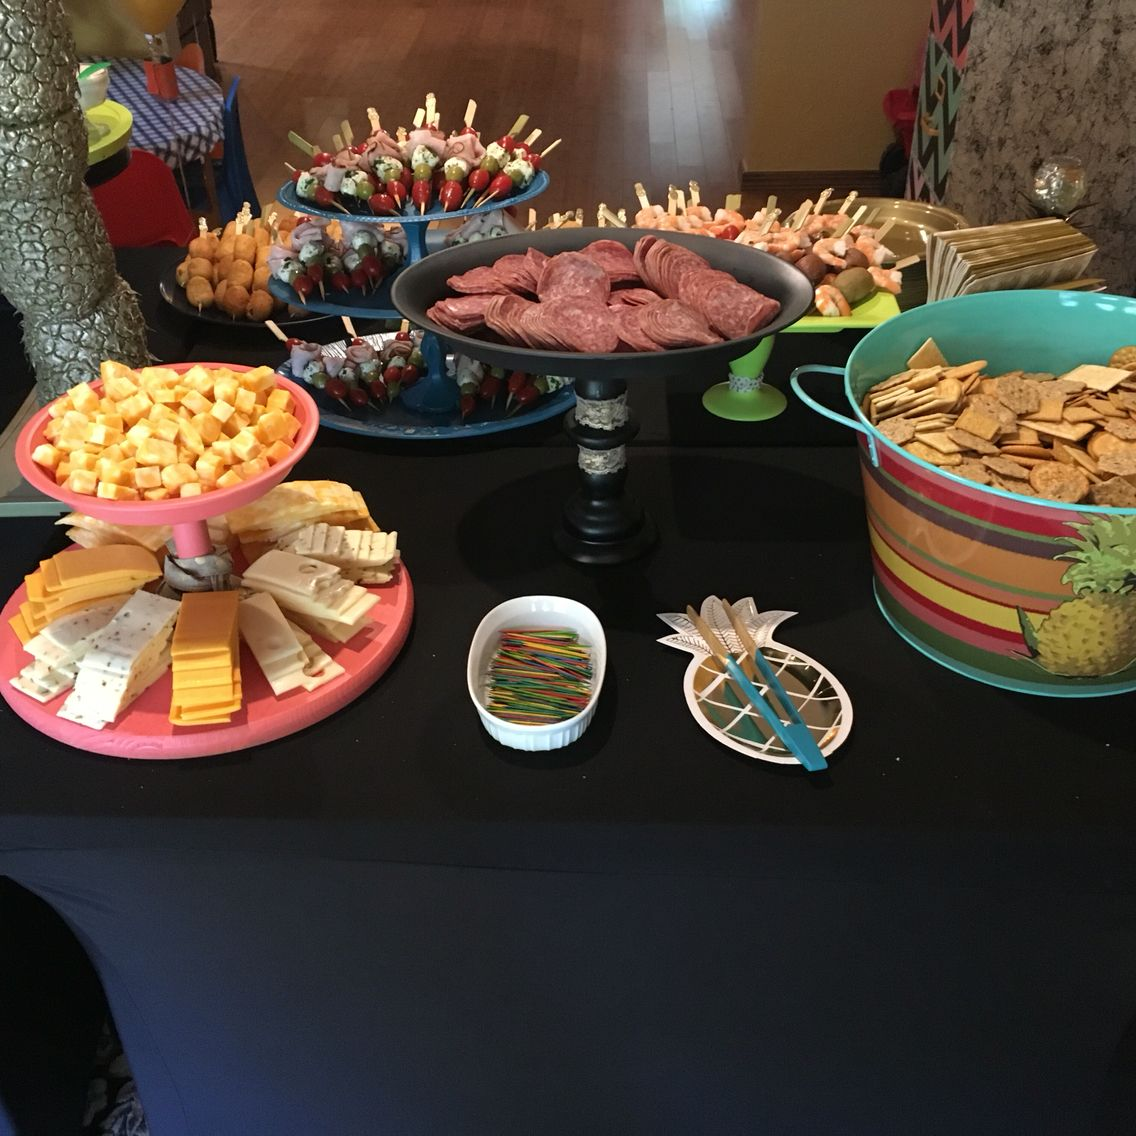 Snack table set up. & Snack table set up. Housewarming party. Skewers cheeses crackers ...